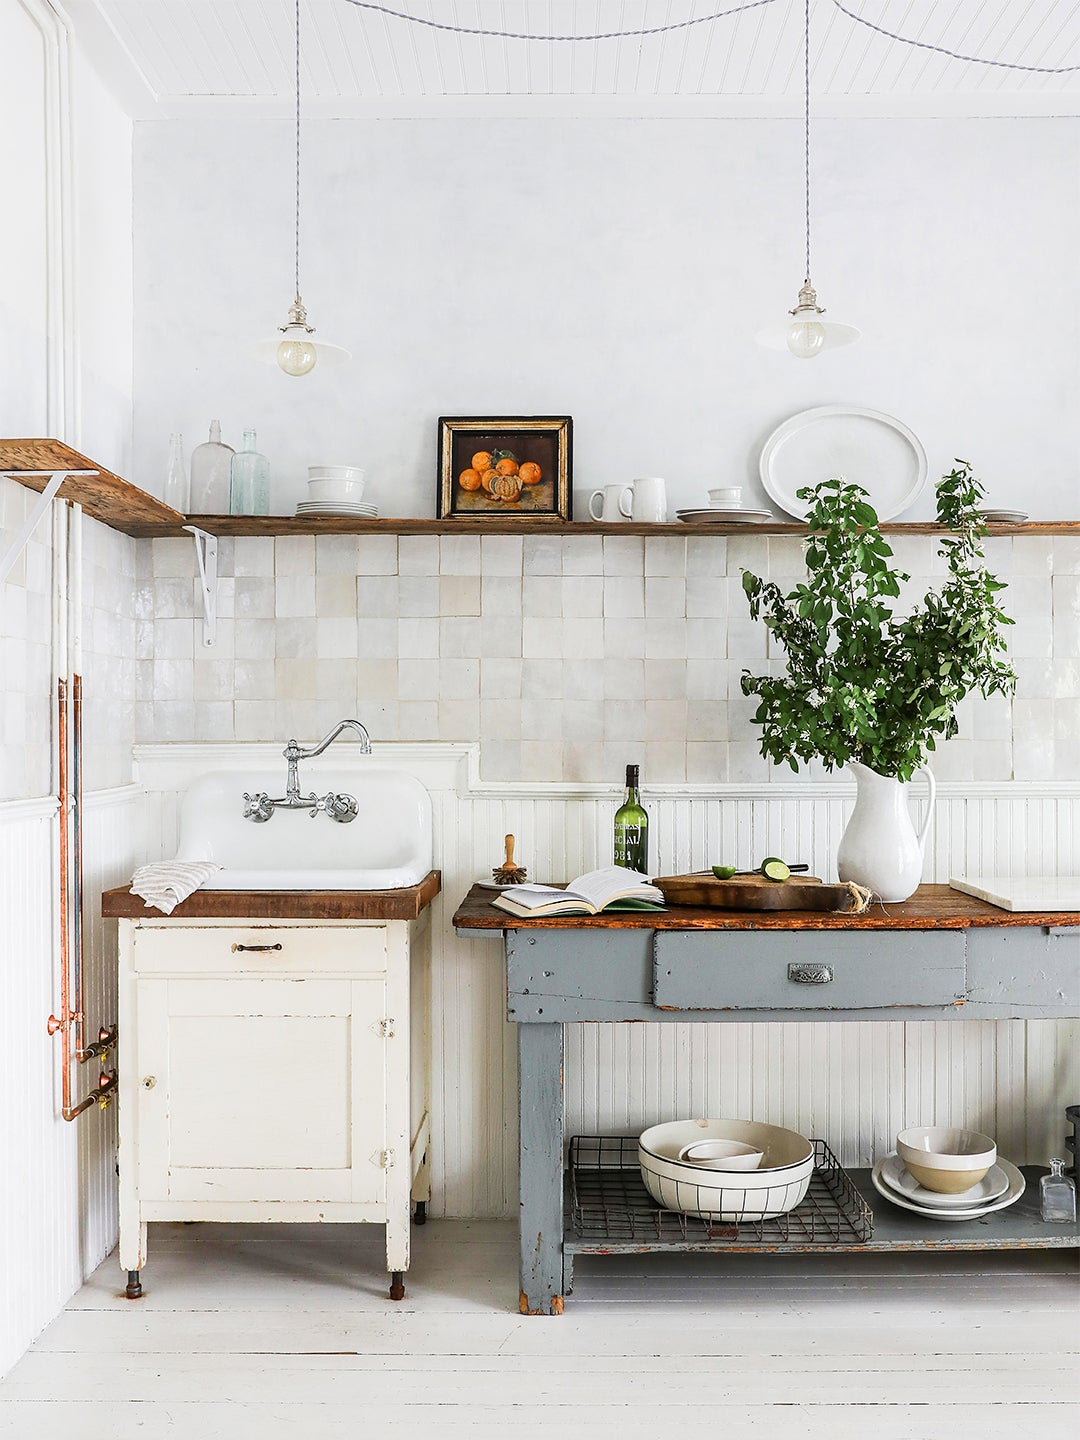 vintage kitchen sink and table